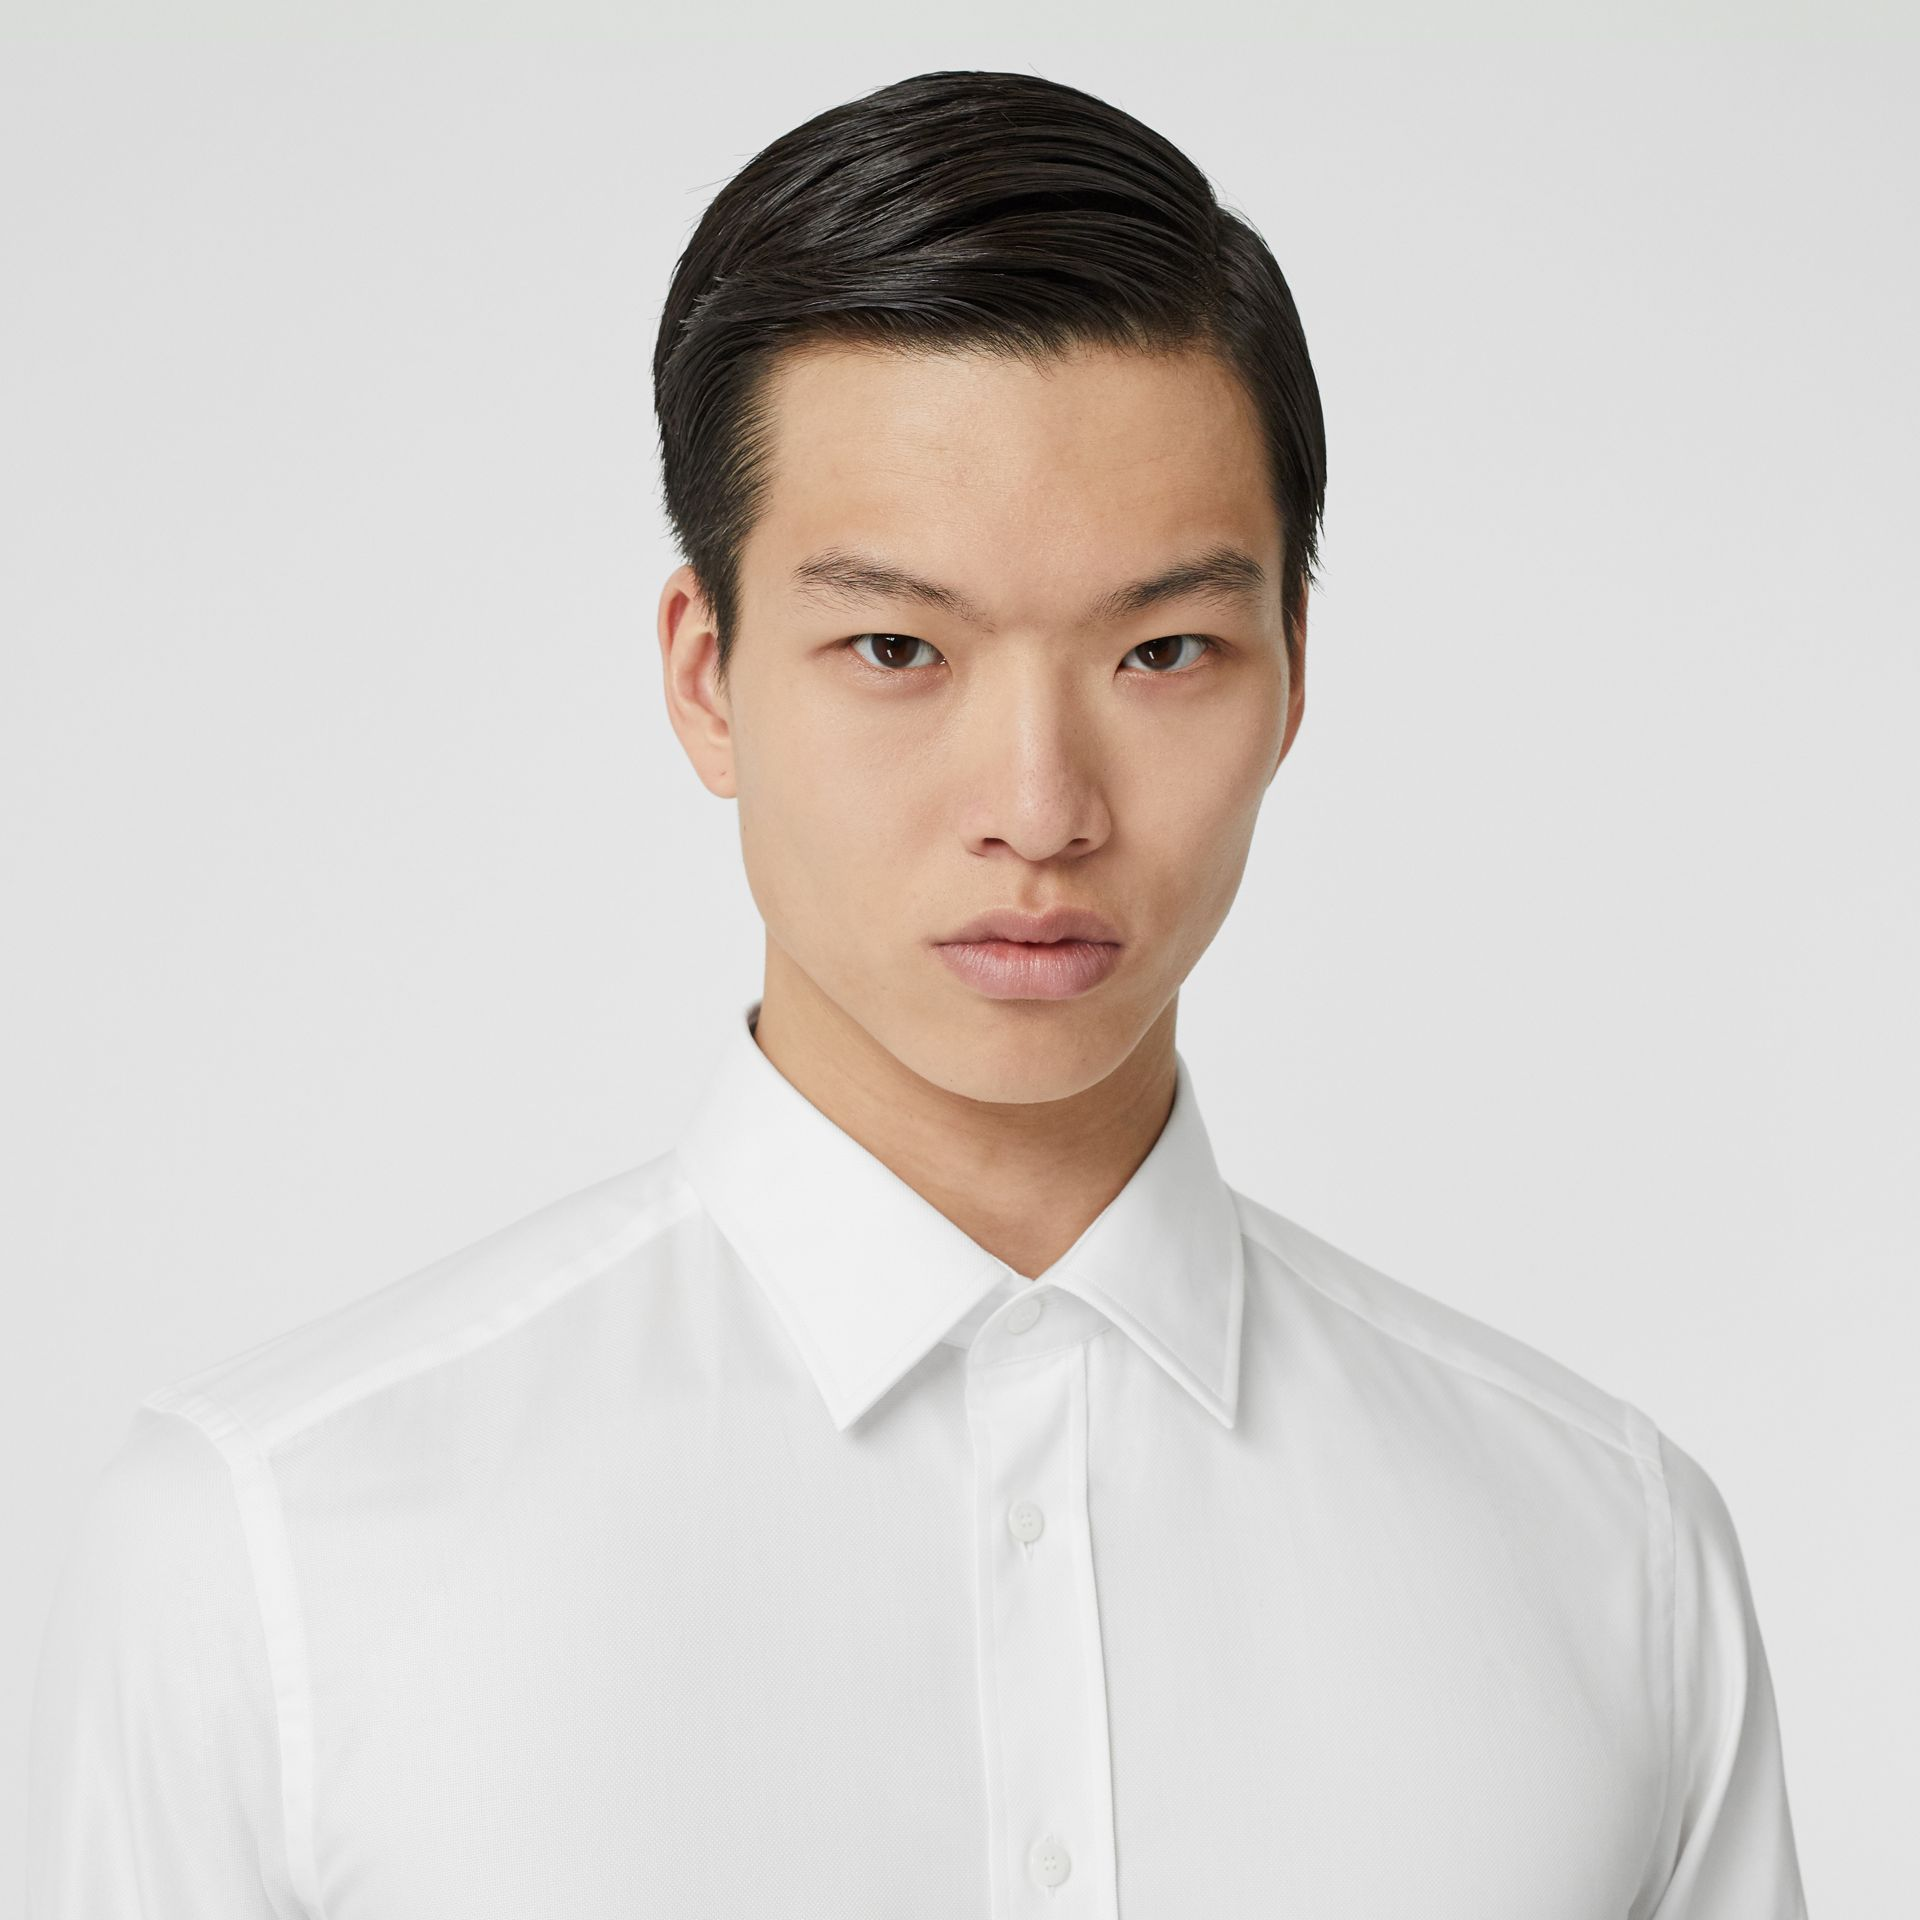 Classic Fit Monogram Motif Cotton Oxford Shirt in White - Men | Burberry United Kingdom - gallery image 6